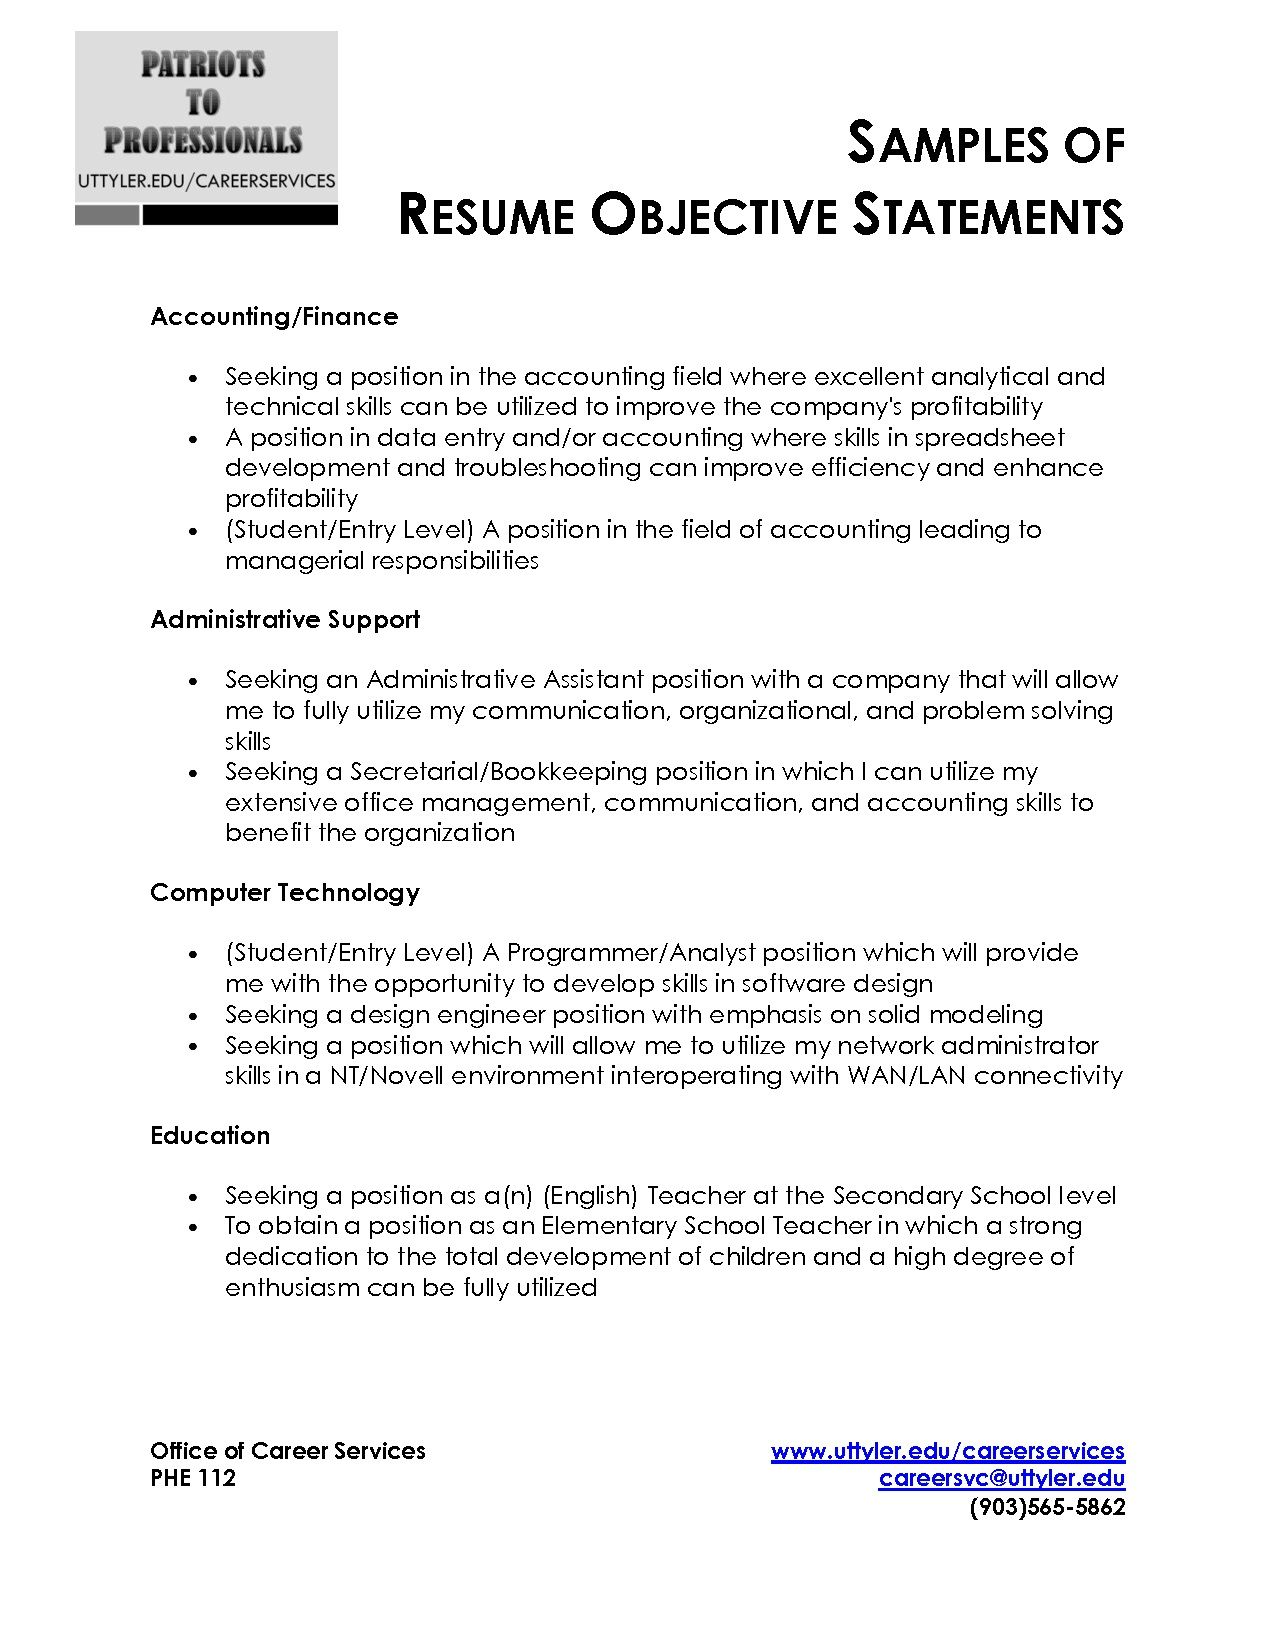 Resume Objectives Samples Sample Resume Objective Statement  Adsbygoogle  Window